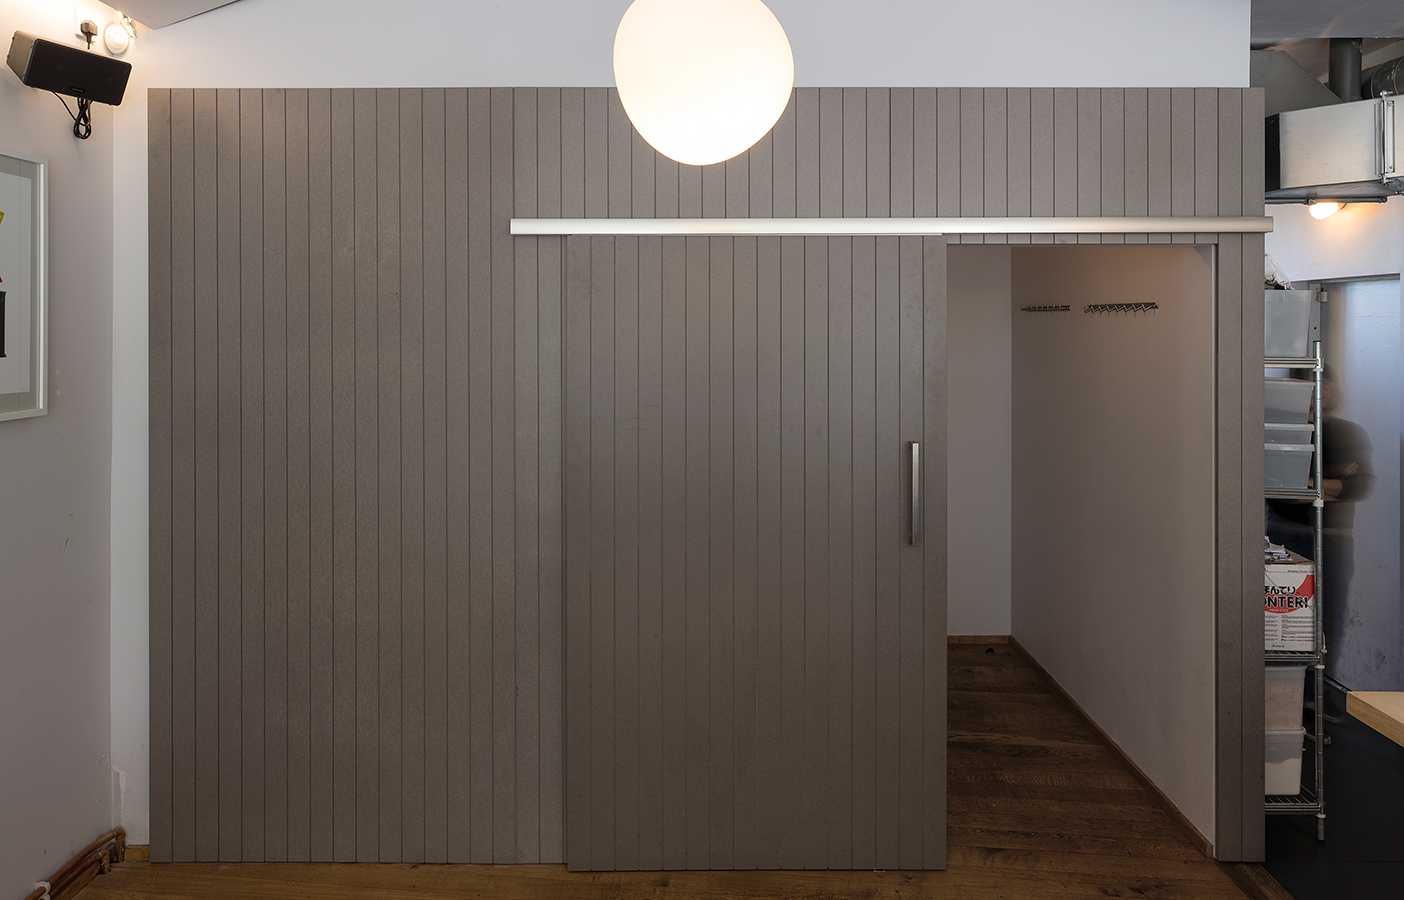 Aldworth James & Bond | Valchromat panelling for Jidori Dalston